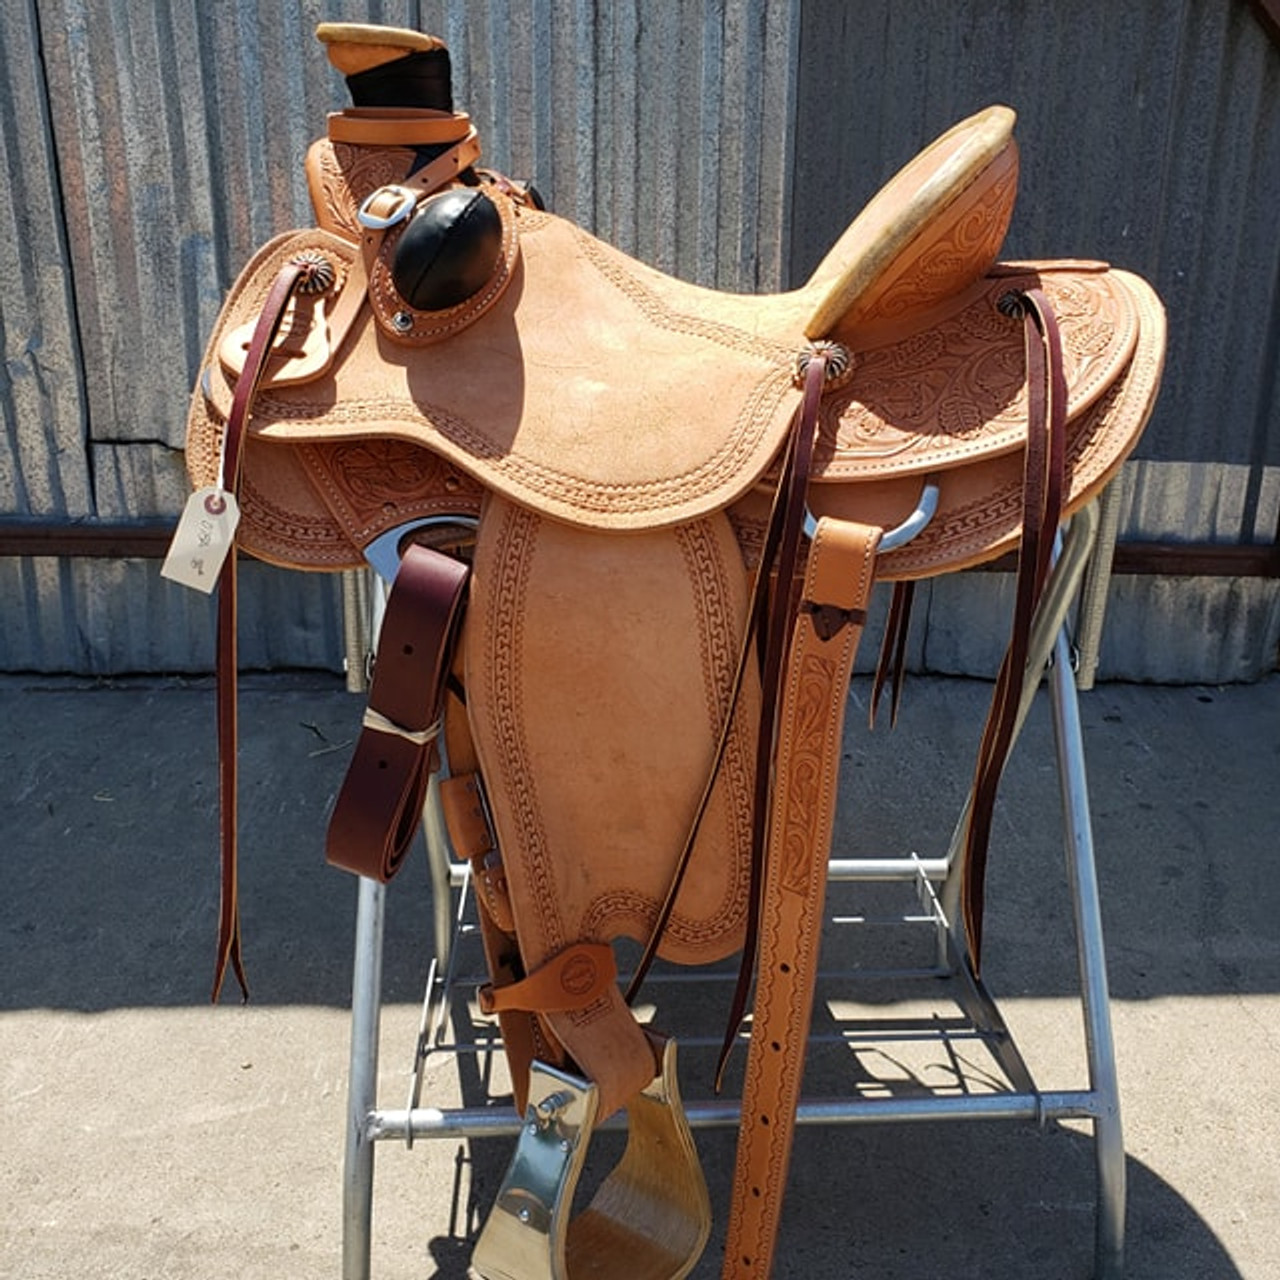 New Wade Saddle by Fort Worth Saddle Co with 17 inch seat. Drop rig, round back, with matching collar and flank cinch. Gullet size is 7.75 inch. Made in USA. Limited lifetime warranty.  S876